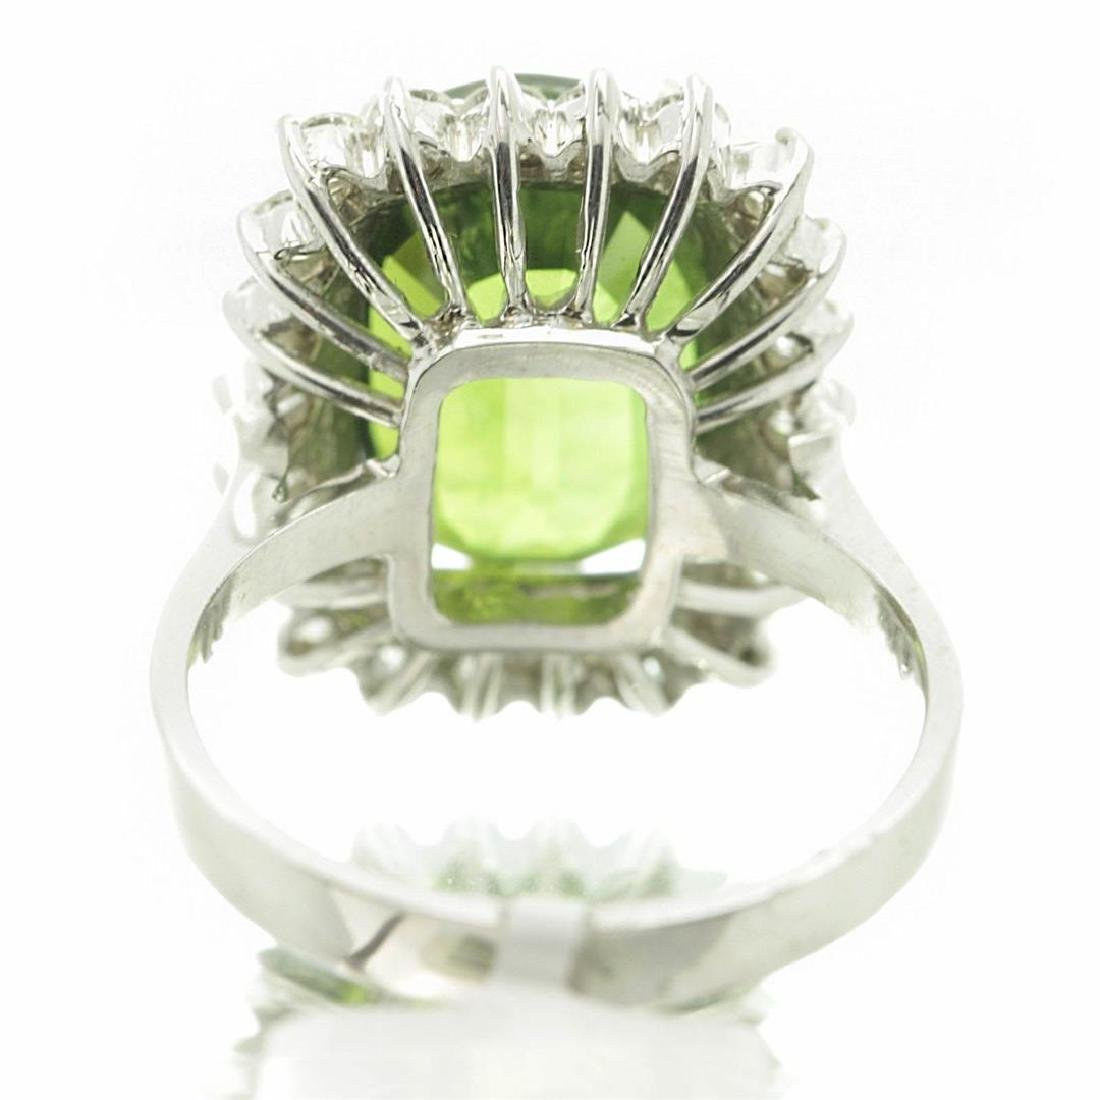 9.75 ctw Green Sapphire and Diamond Ring - 14KT White - 6